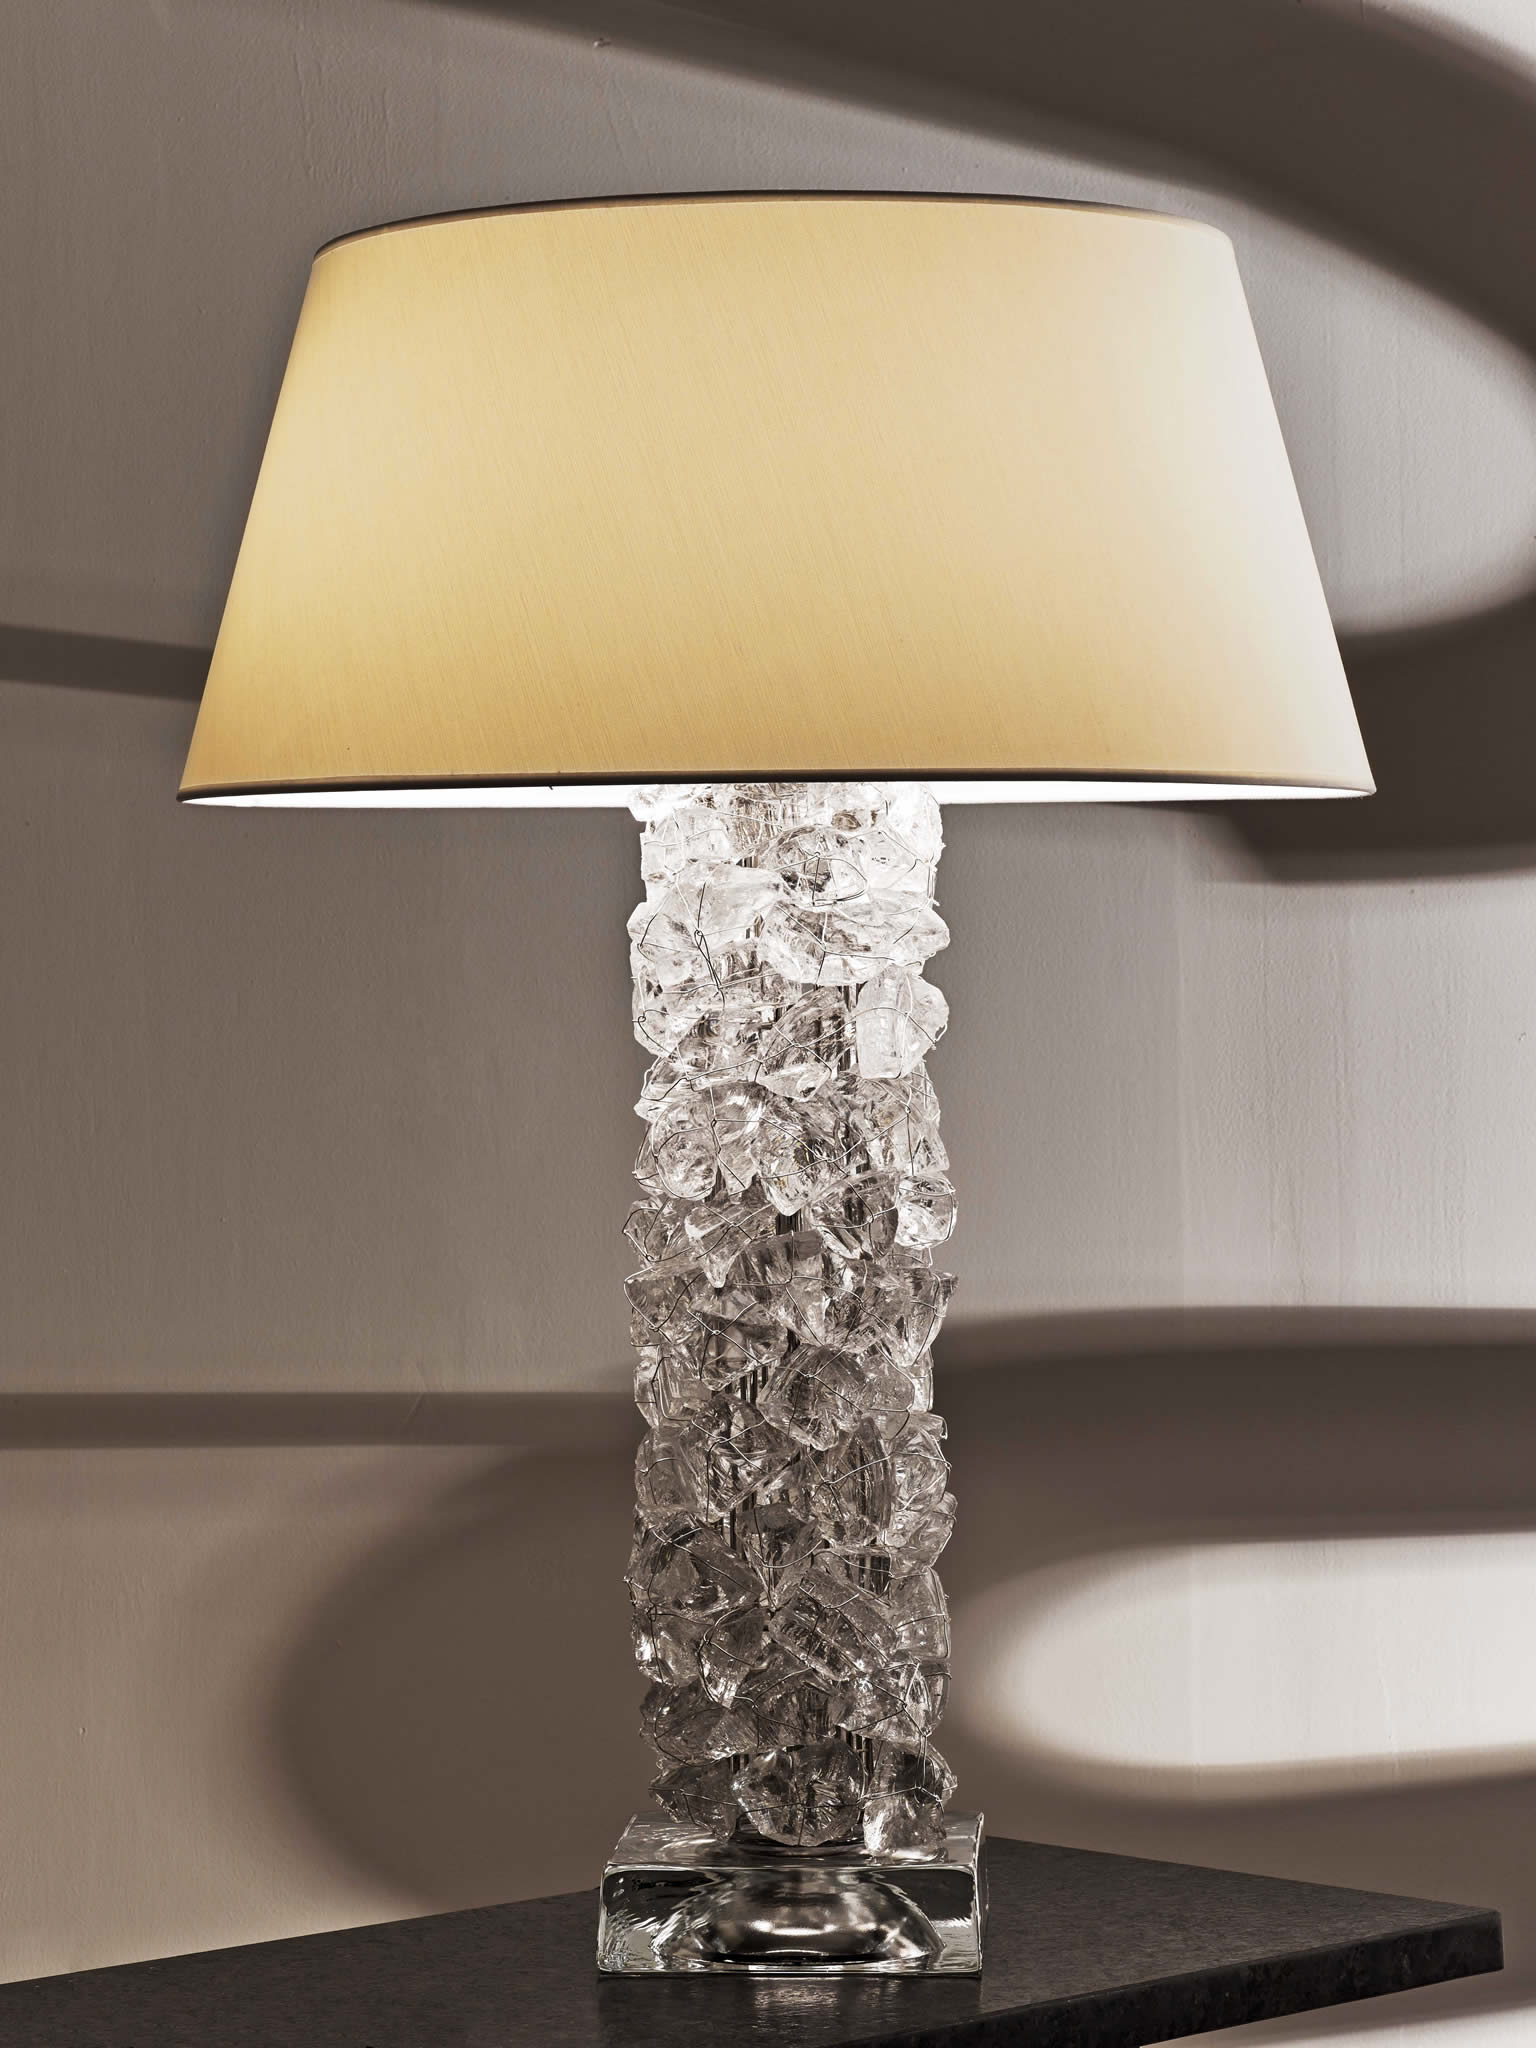 Cl sterling son rock pillar table lamp for Rock lamp